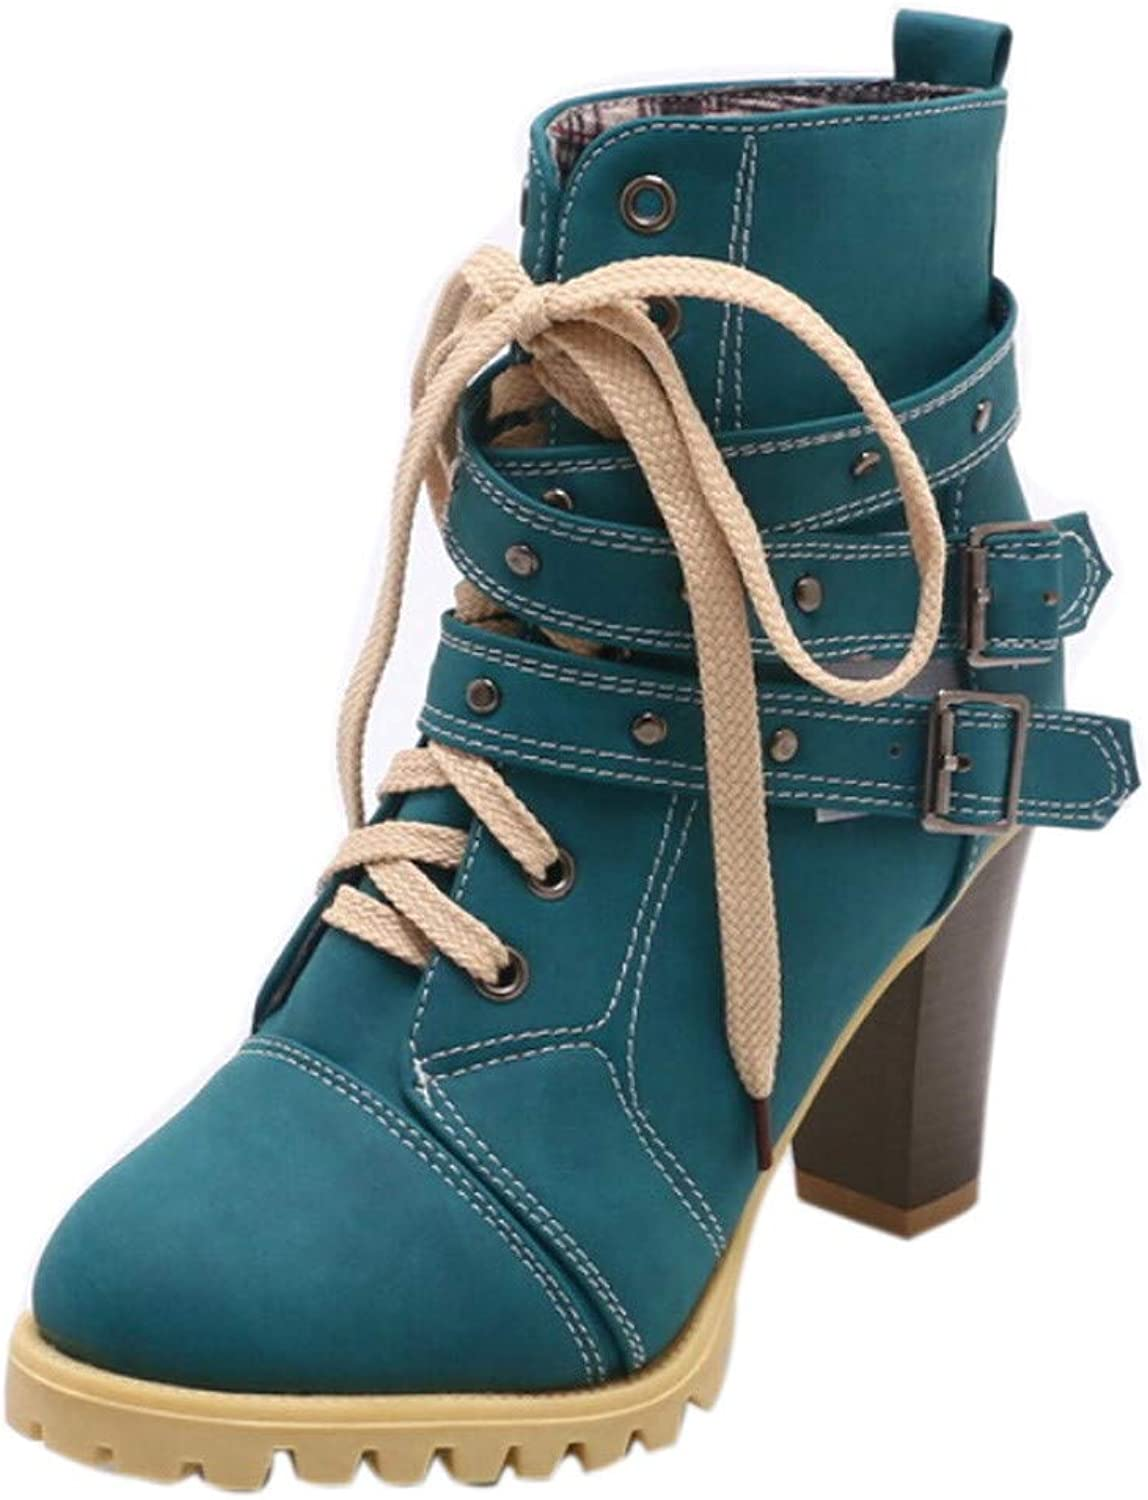 Anxinke Women Retro Lace-up High Heels Buckle Strap High Block Heel Ankle Boots